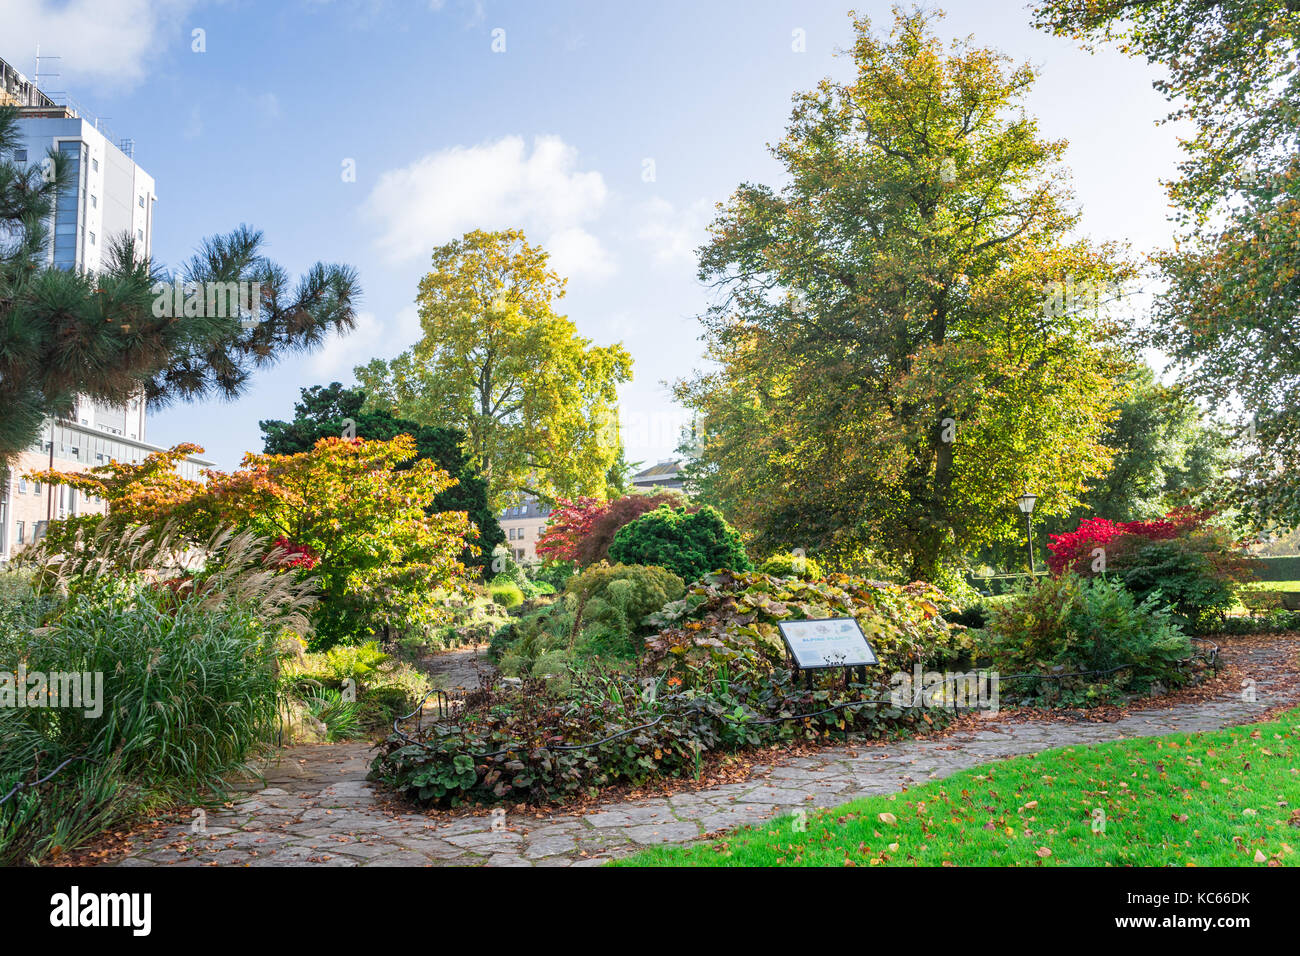 Andrews East Park during autumn in the city centre of Southampton, England, UK - Stock Image